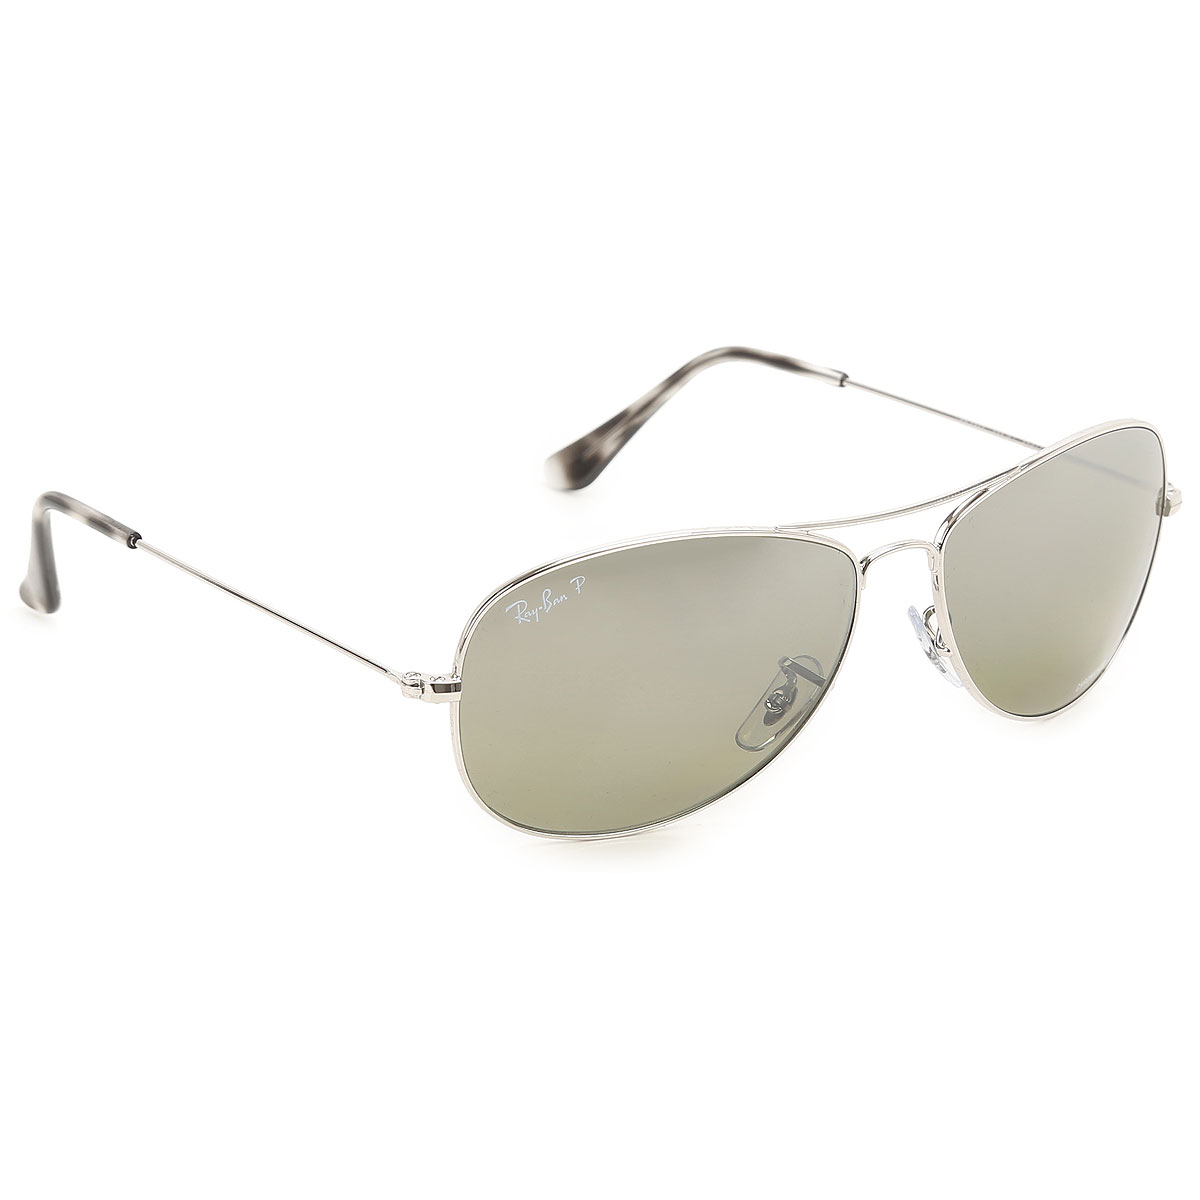 Ray Ban Sunglasses On Sale, Silver, 2019